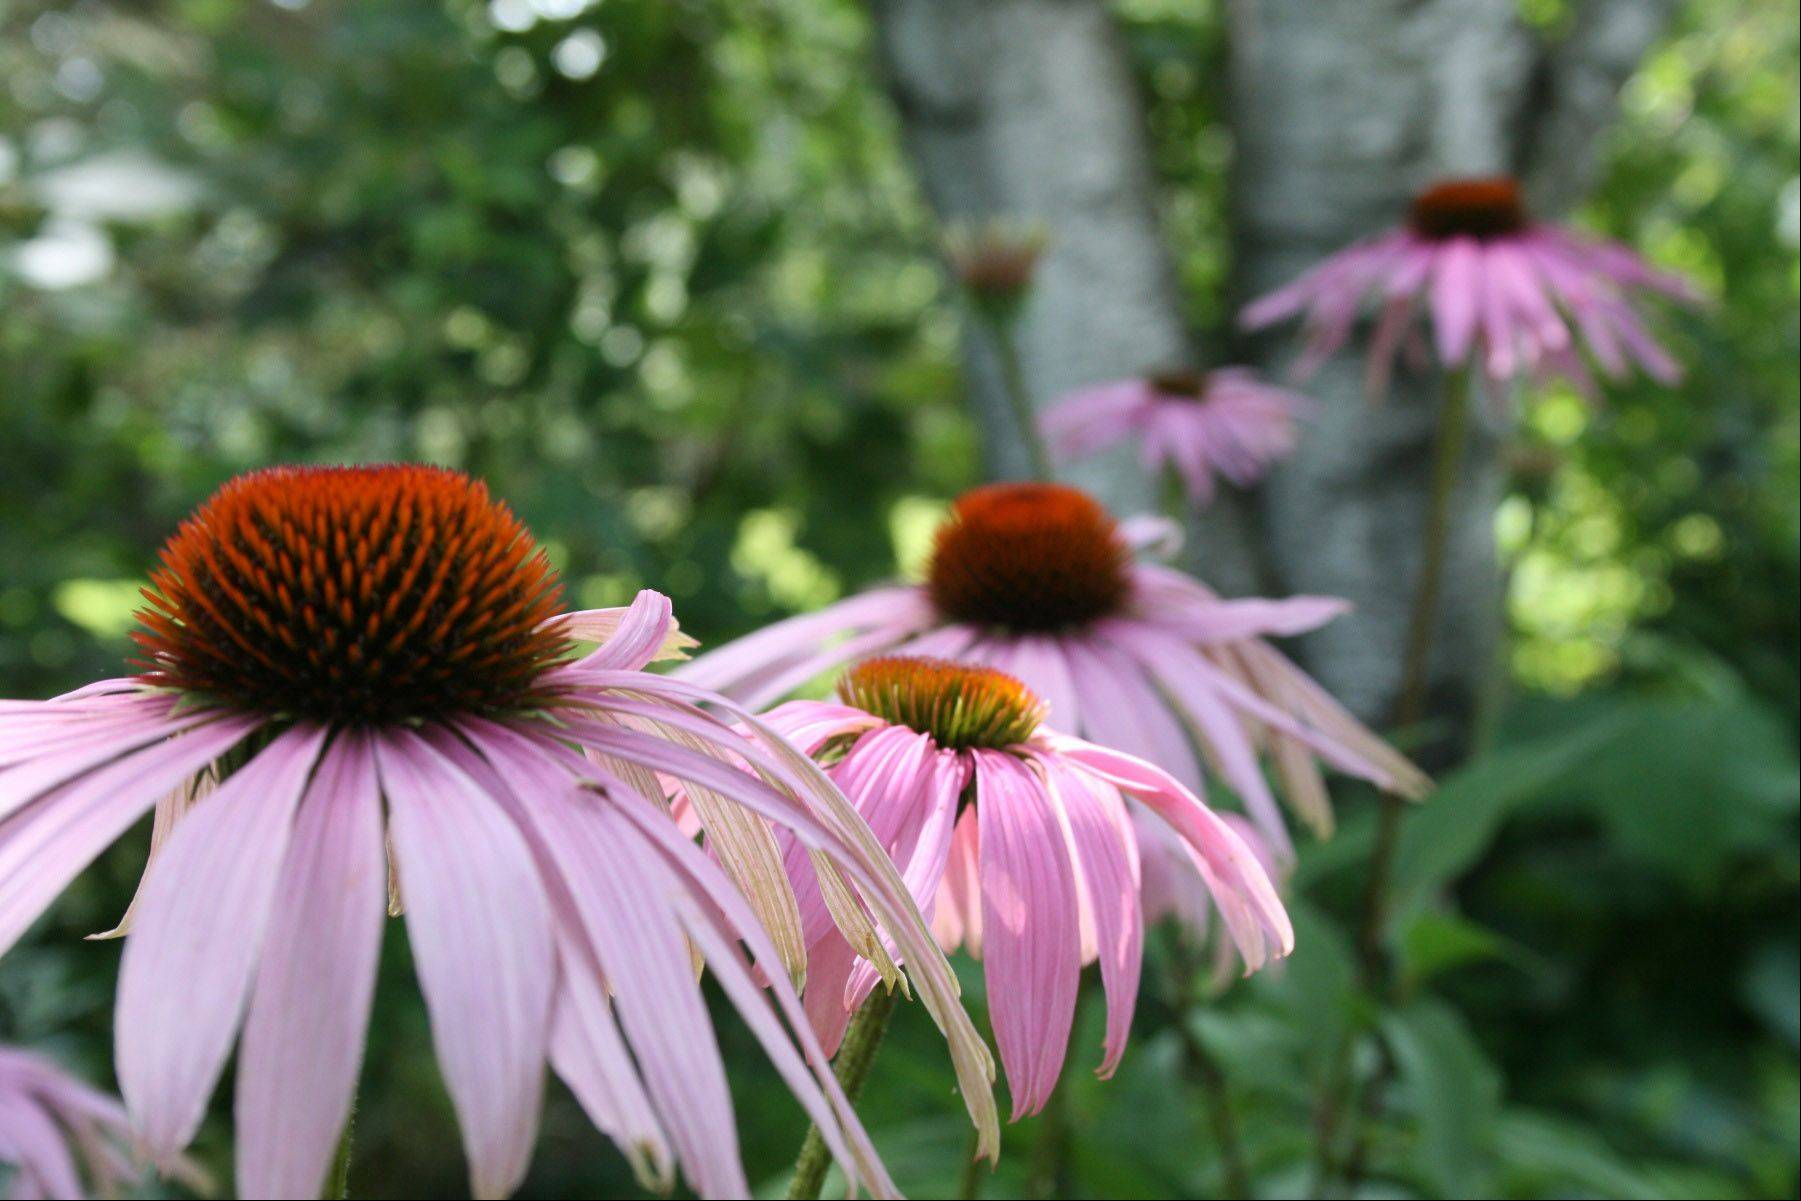 This photo was taken in my friend's garden in Wisconsin. I love the row of cone flowers making their way up to the birch tree.